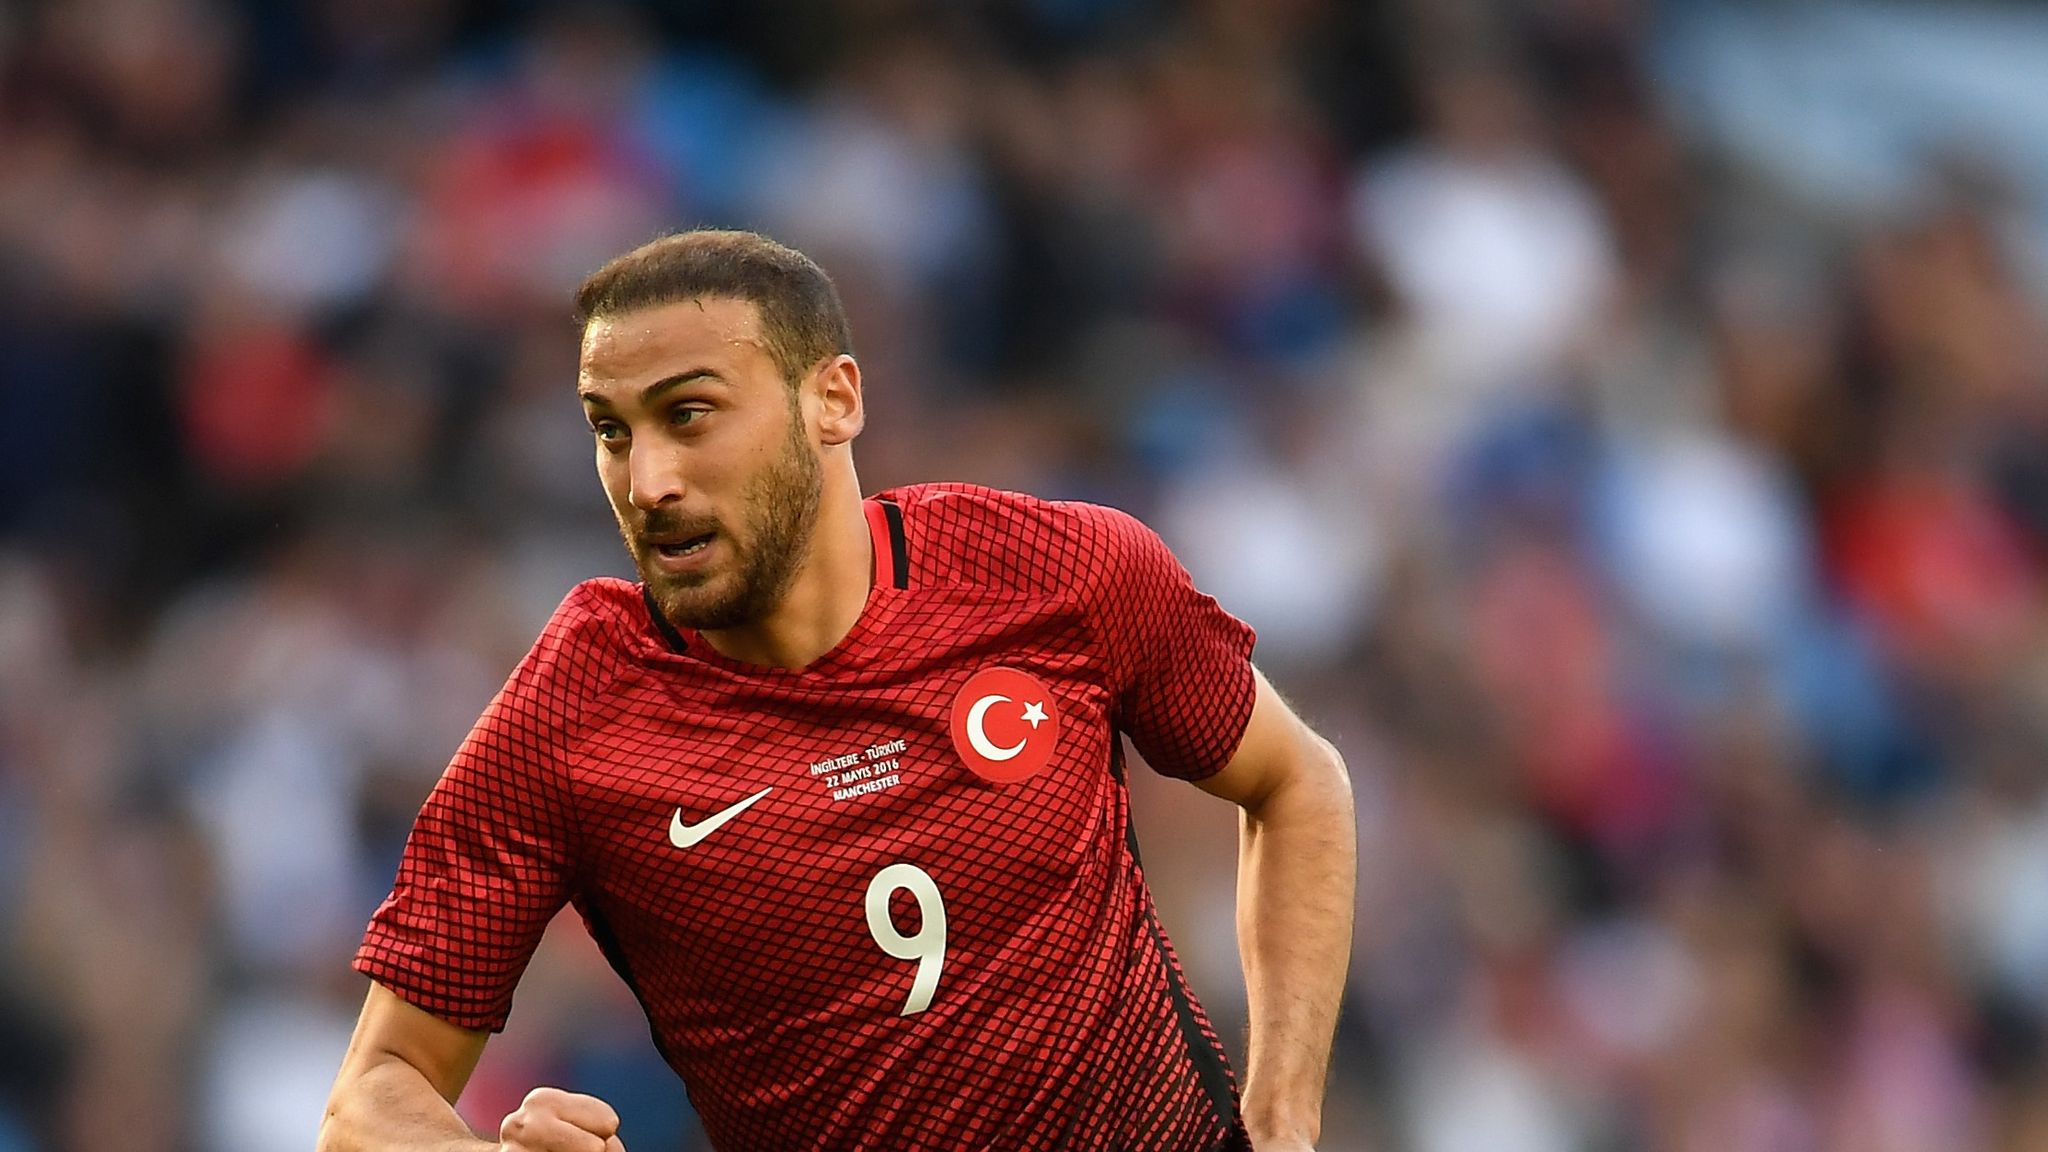 Image result for Cenk Tosun for turkey